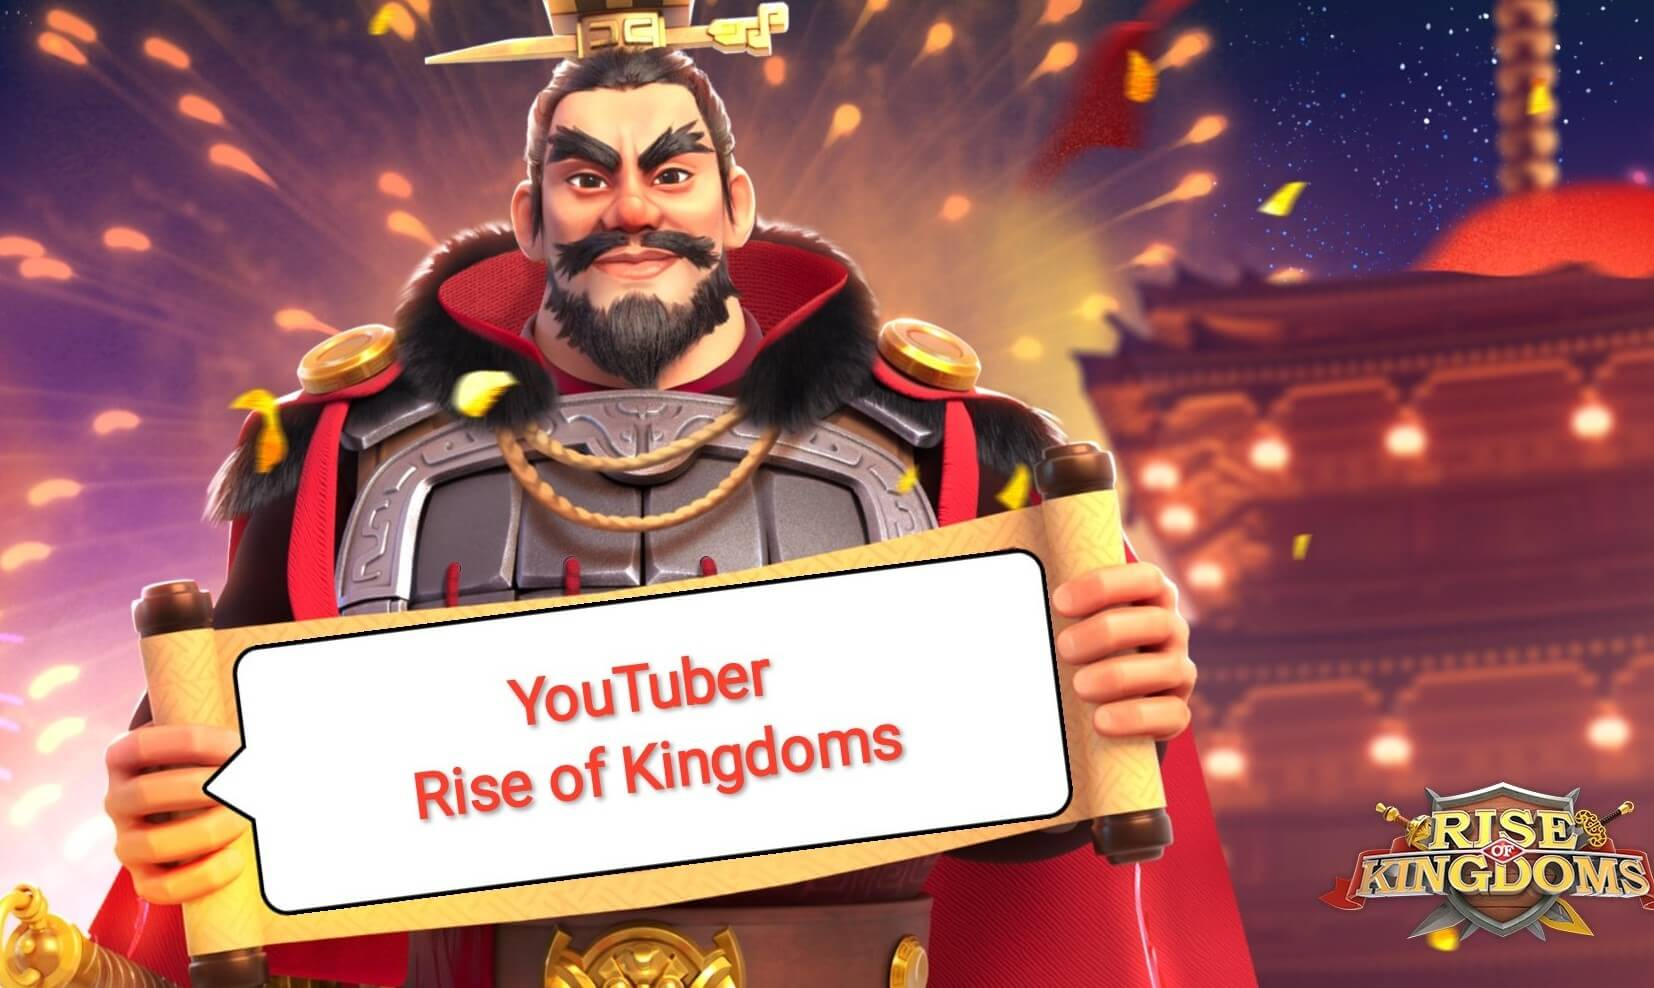 youtuber rise of kingdoms indonesia